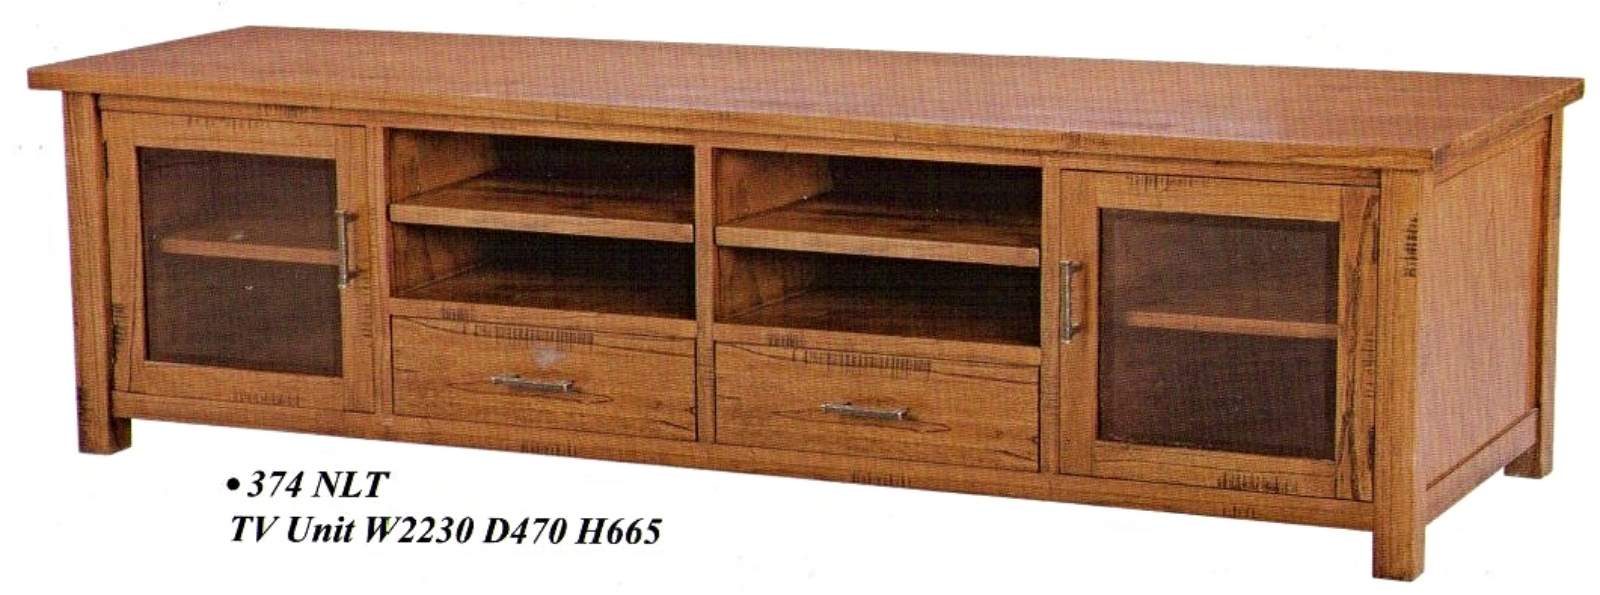 TV stand timber374 | ausmart online | nunawading, melbourne